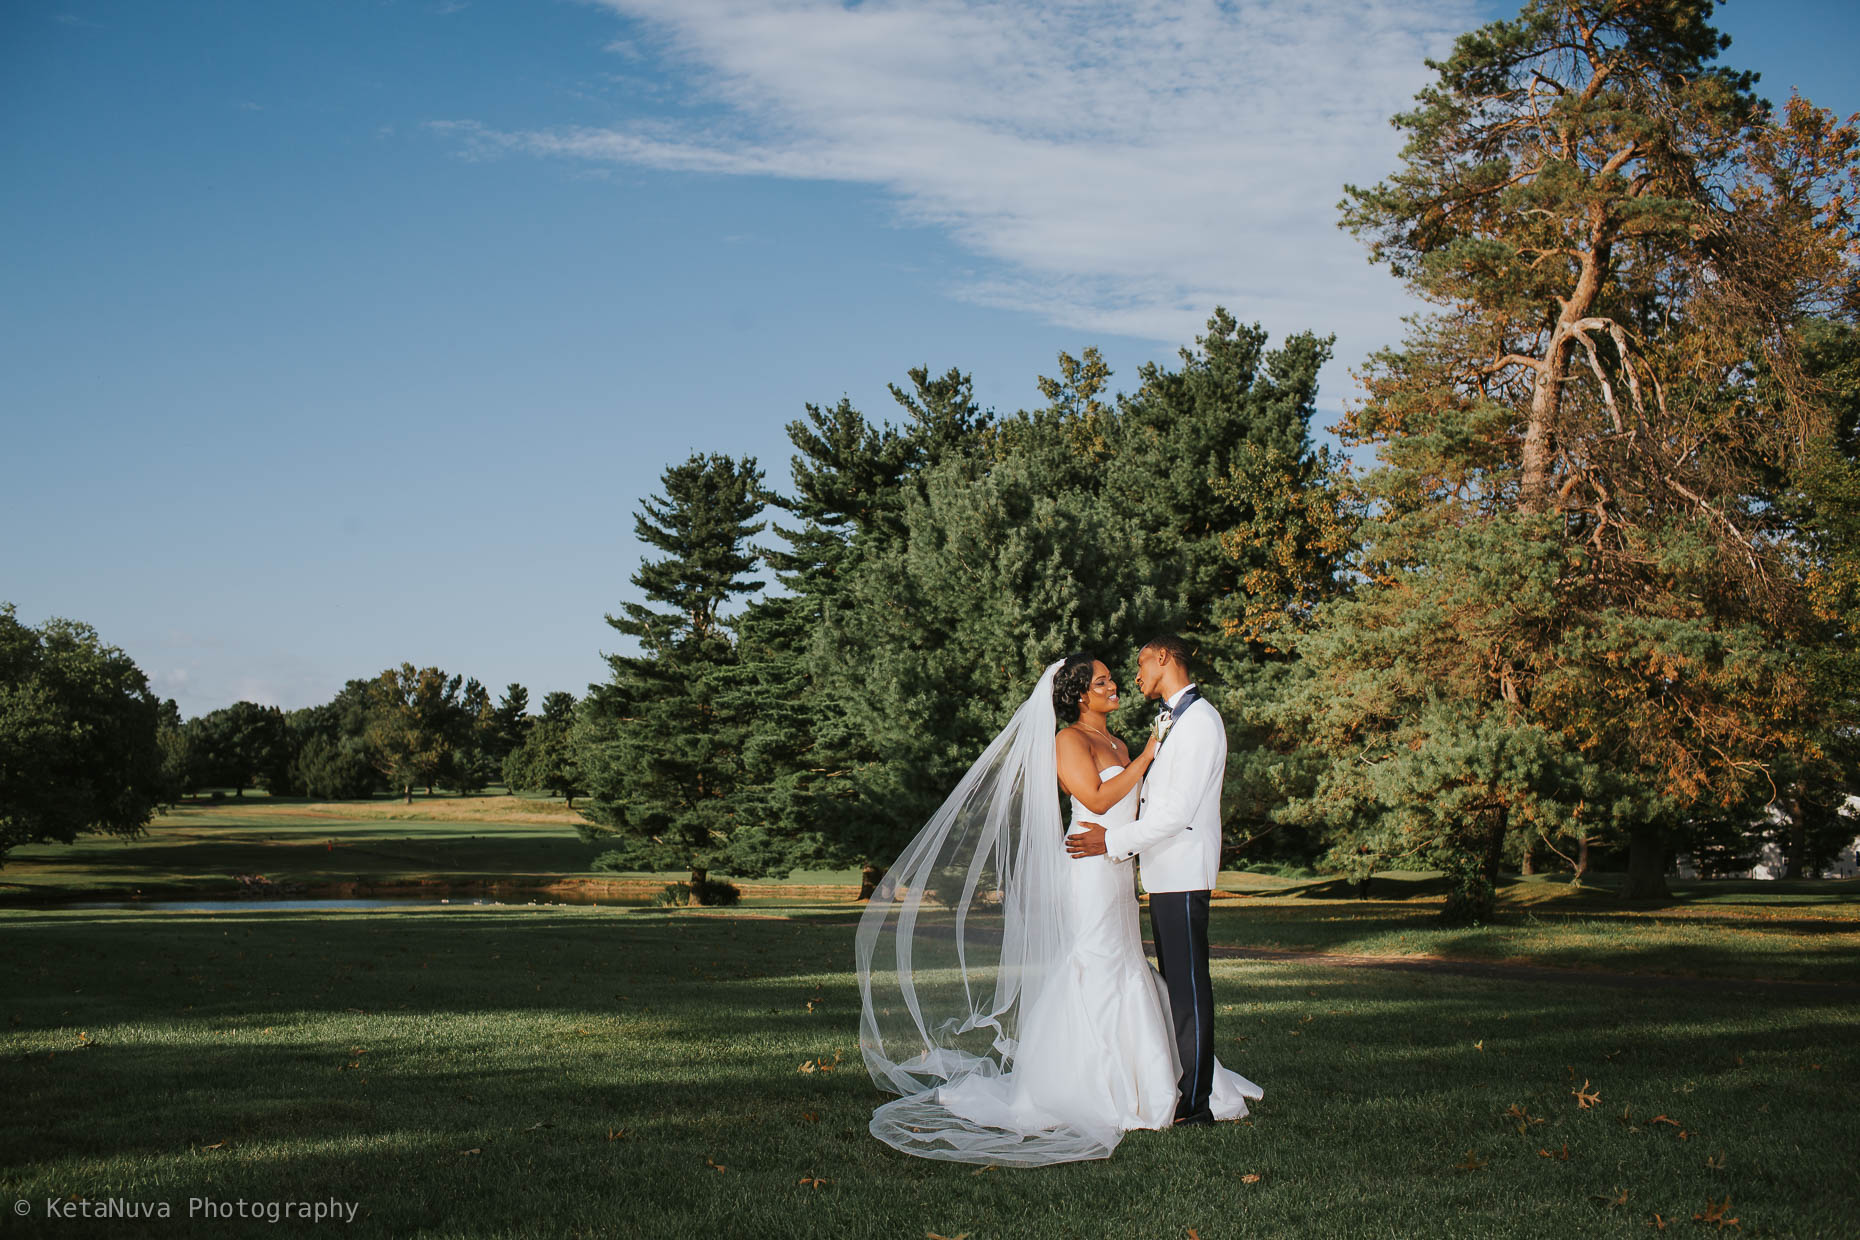 Northampton Valley Country Club Wedding | Ashley & Anthony Northampton Valley Country Club Wedding Photos PA Wedding Photographers 18